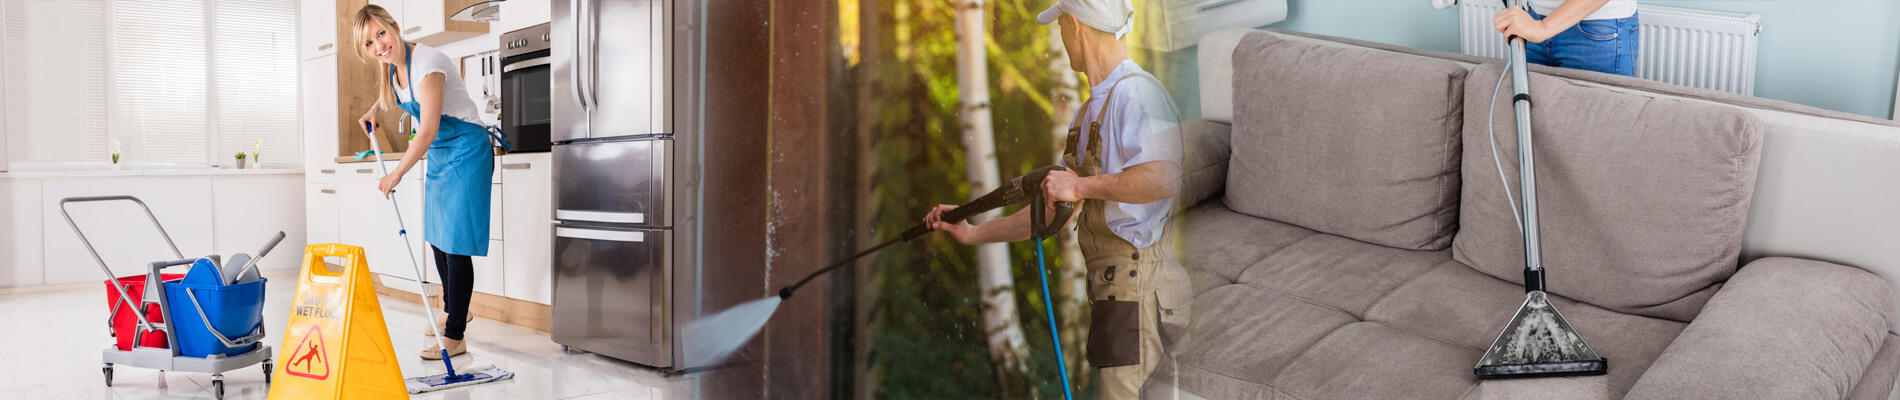 tanya amaya web design local house cleaning services